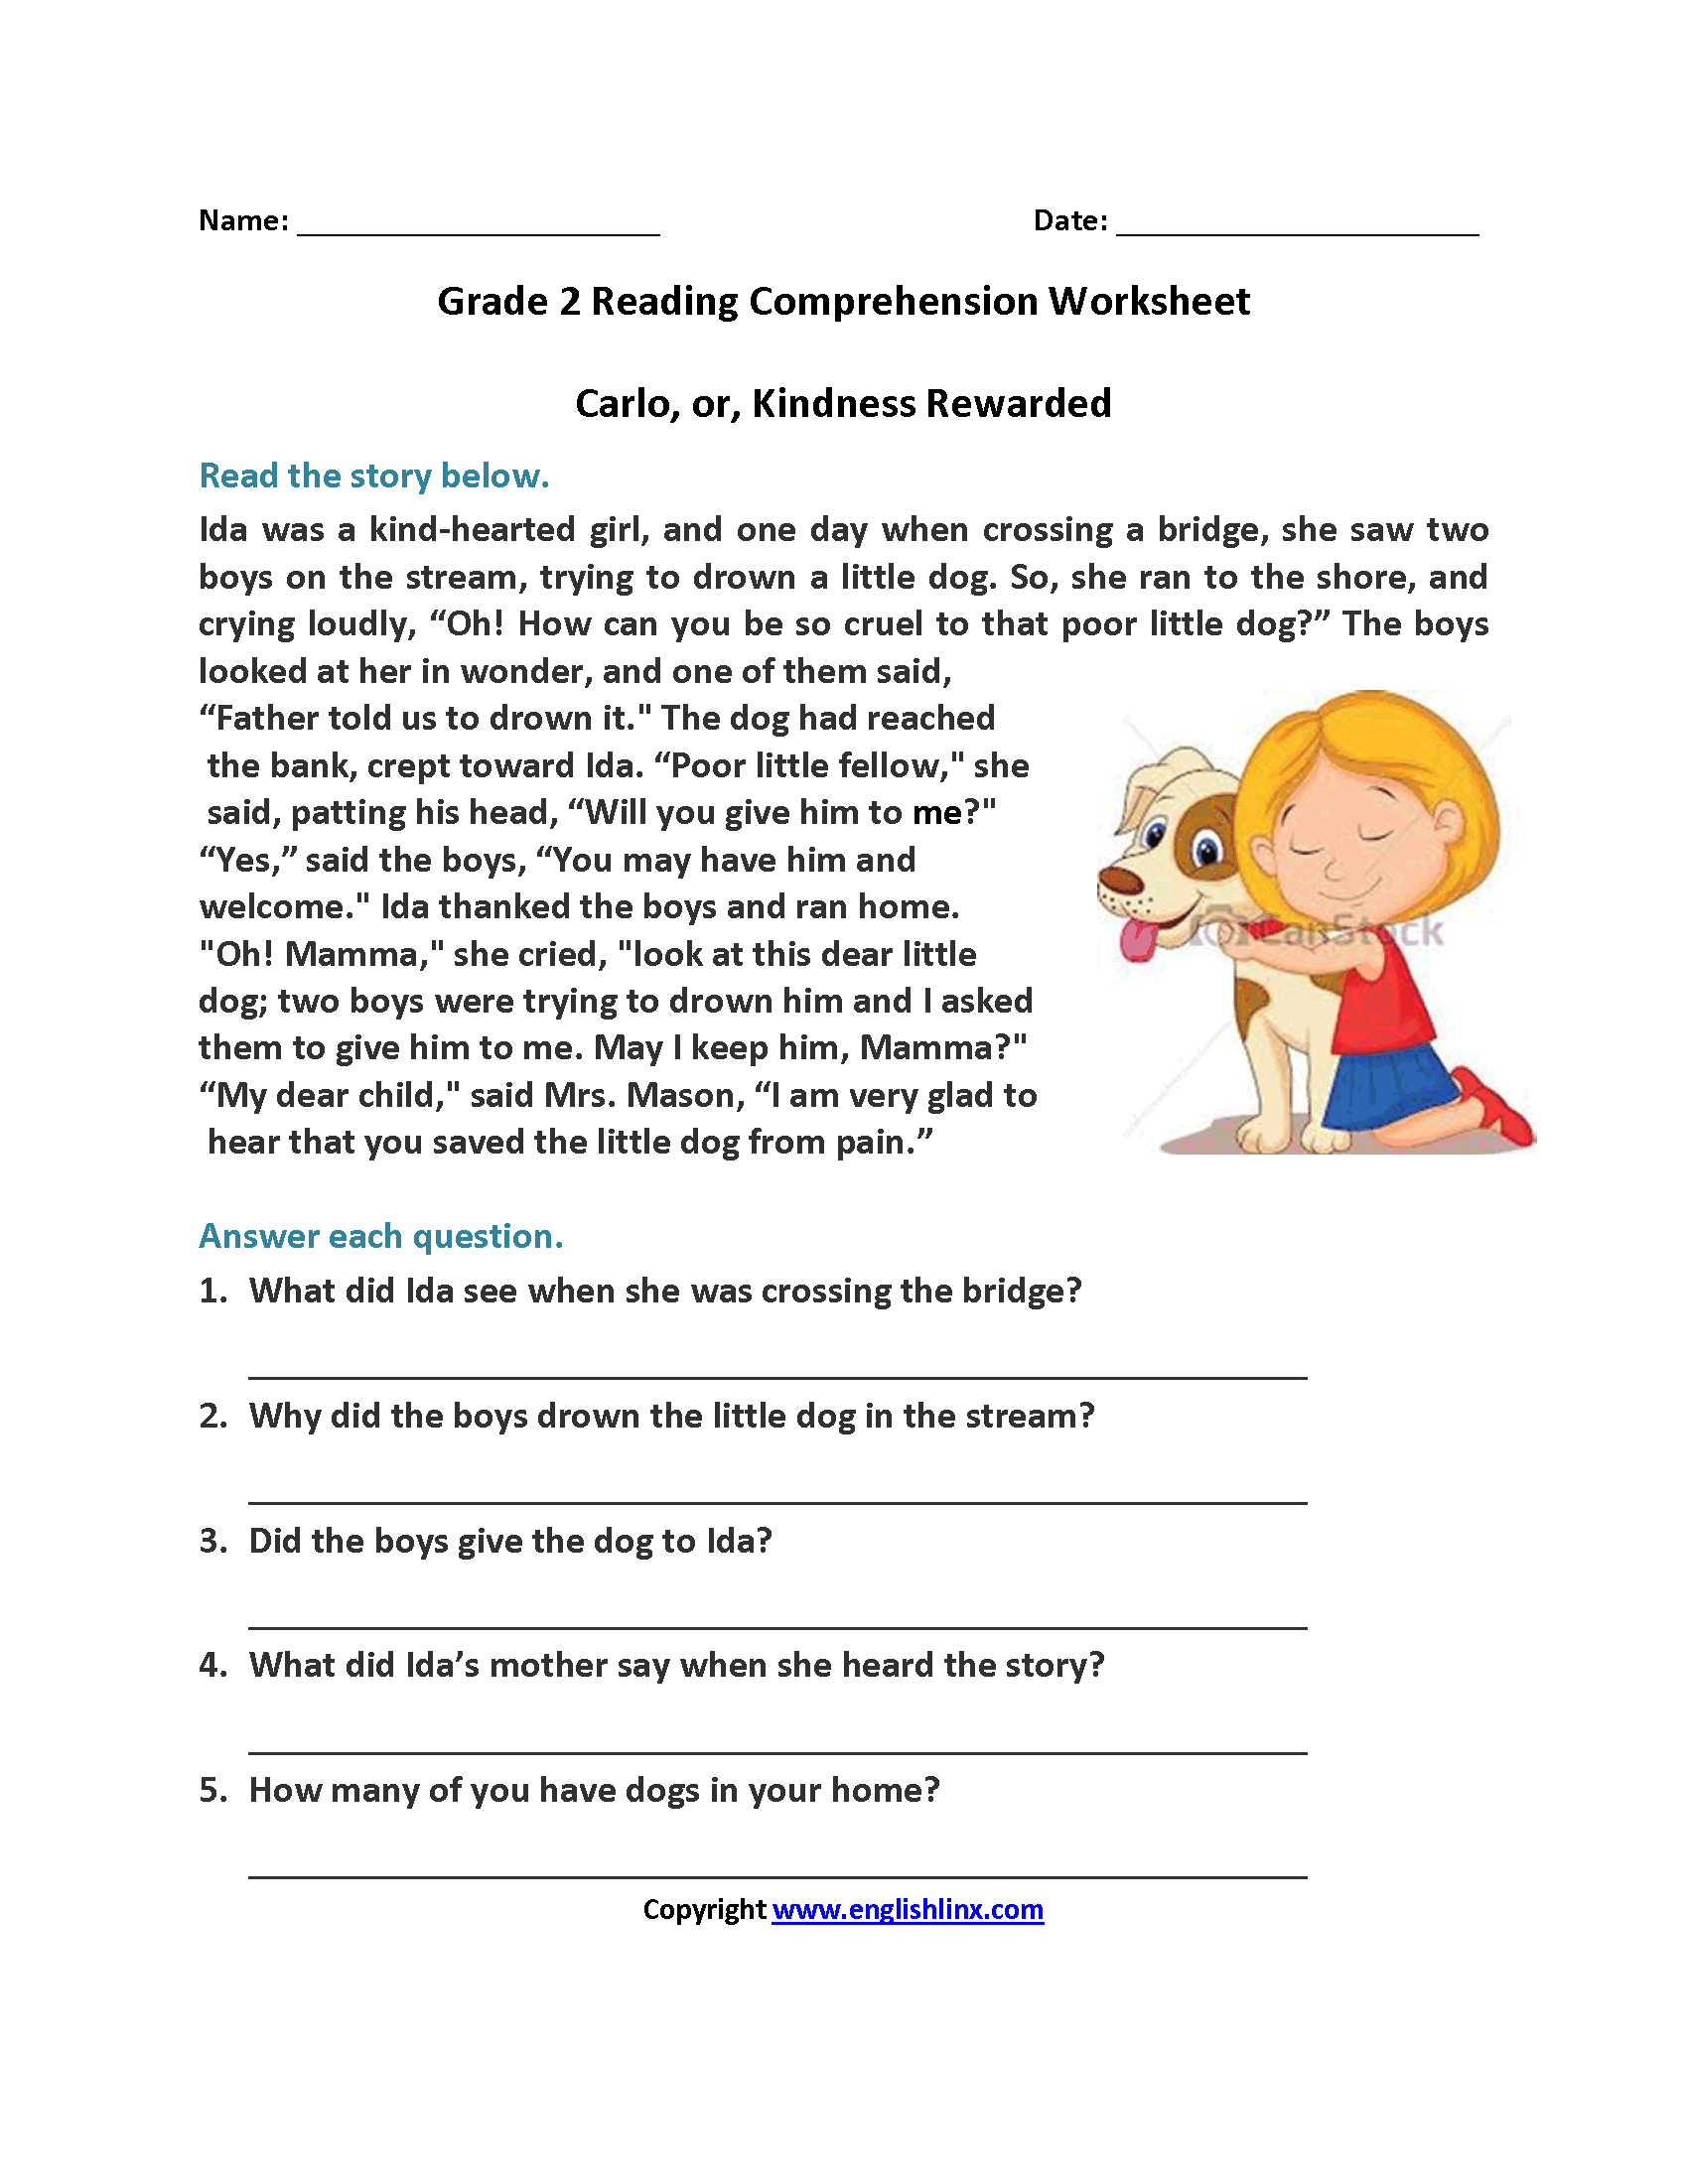 Carlo Or Kindness Rewarded Second Grade Reading Worksheets | Reading - Third Grade Reading Worksheets Free Printable